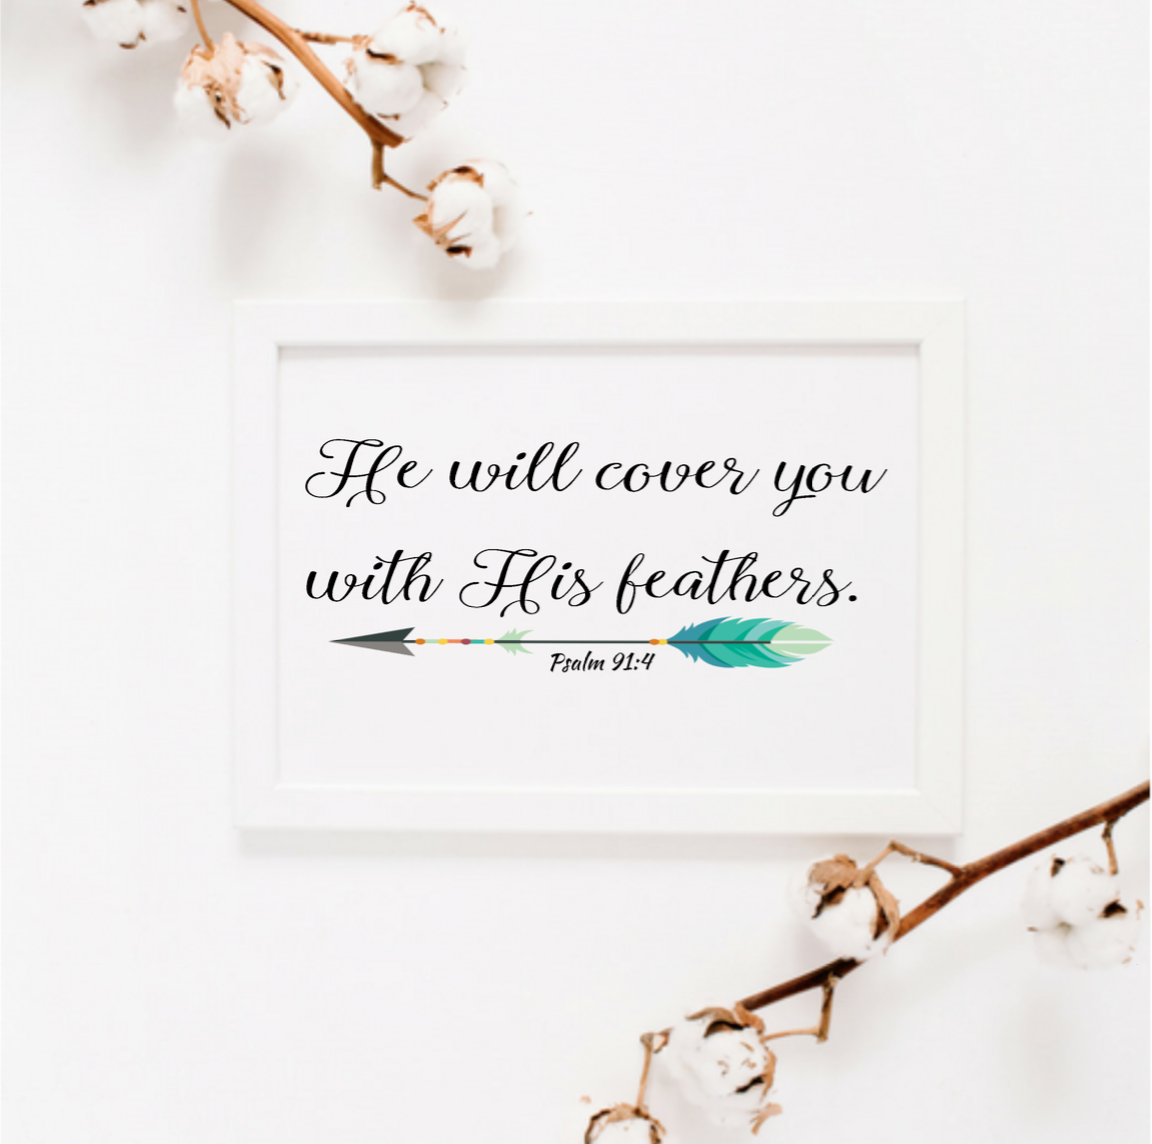 photograph relating to Psalm 91 Printable named He will protect on your own with His feathers Psalm 91:4 wall artwork Print Printable Christian Religion Scripture quotation printable artwork residence decor print